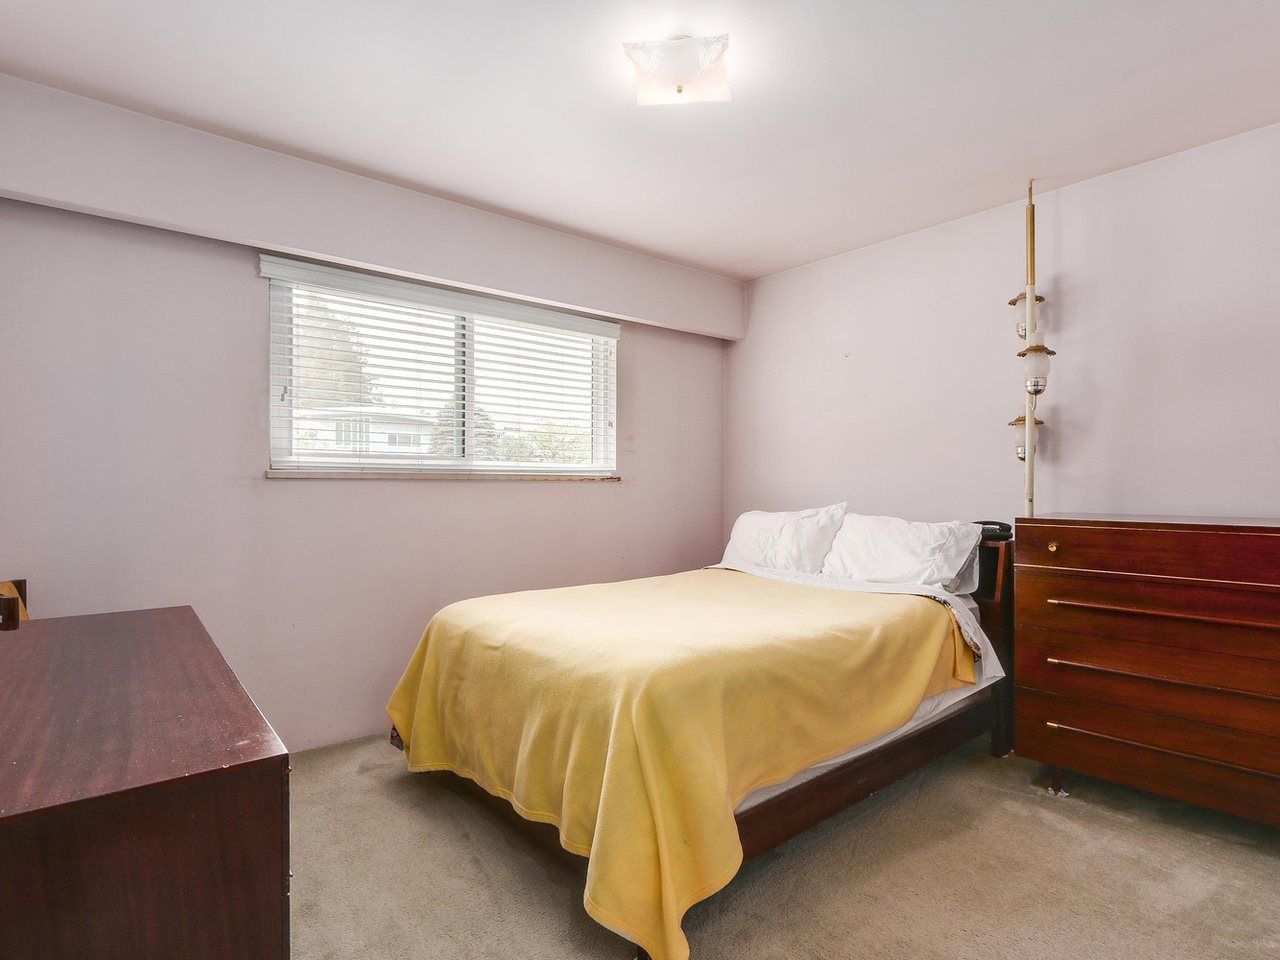 Photo 11: Photos: 731 LINTON Street in Coquitlam: Central Coquitlam House for sale : MLS®# R2157896